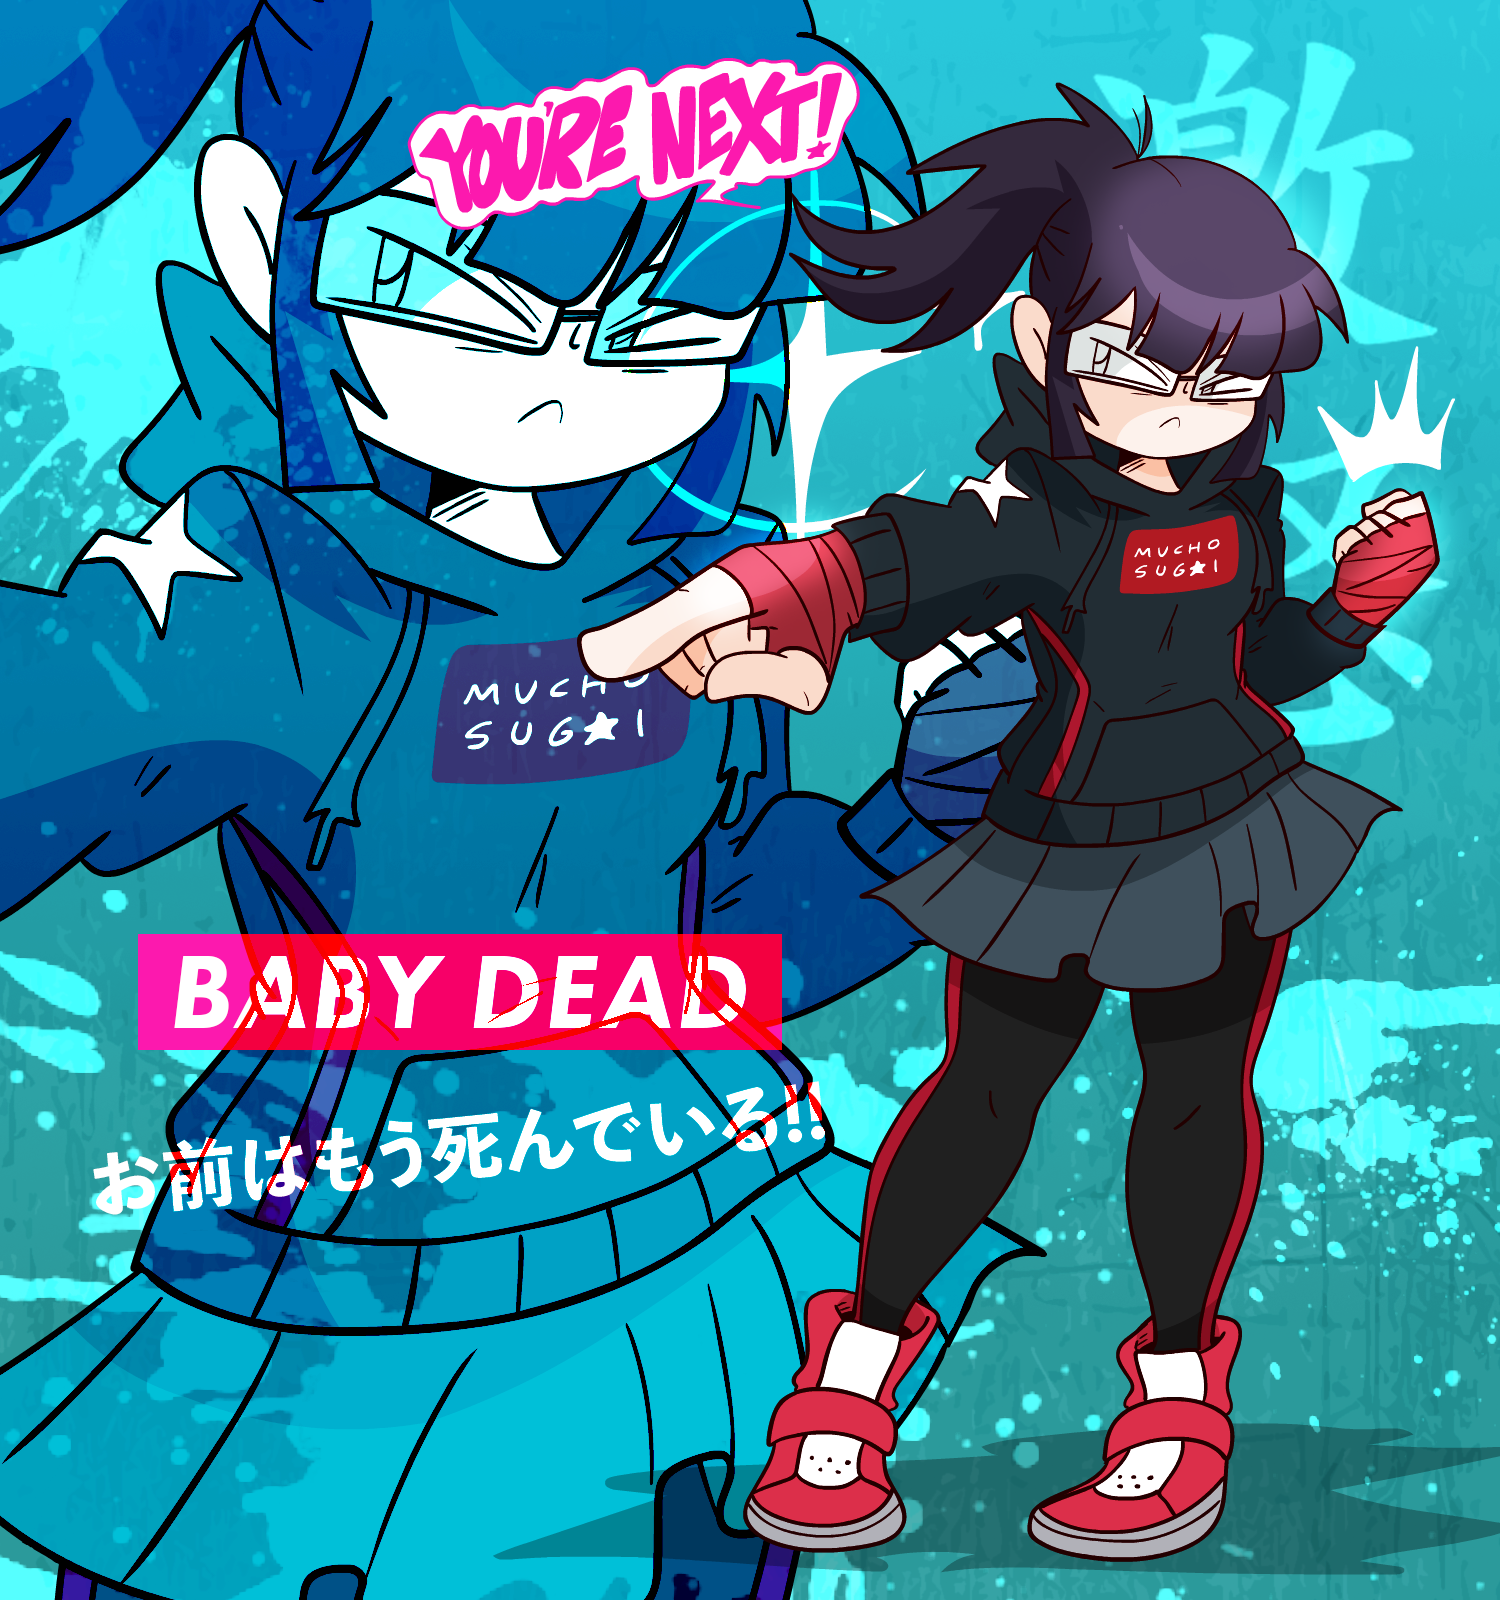 Baby Dead - You're Next